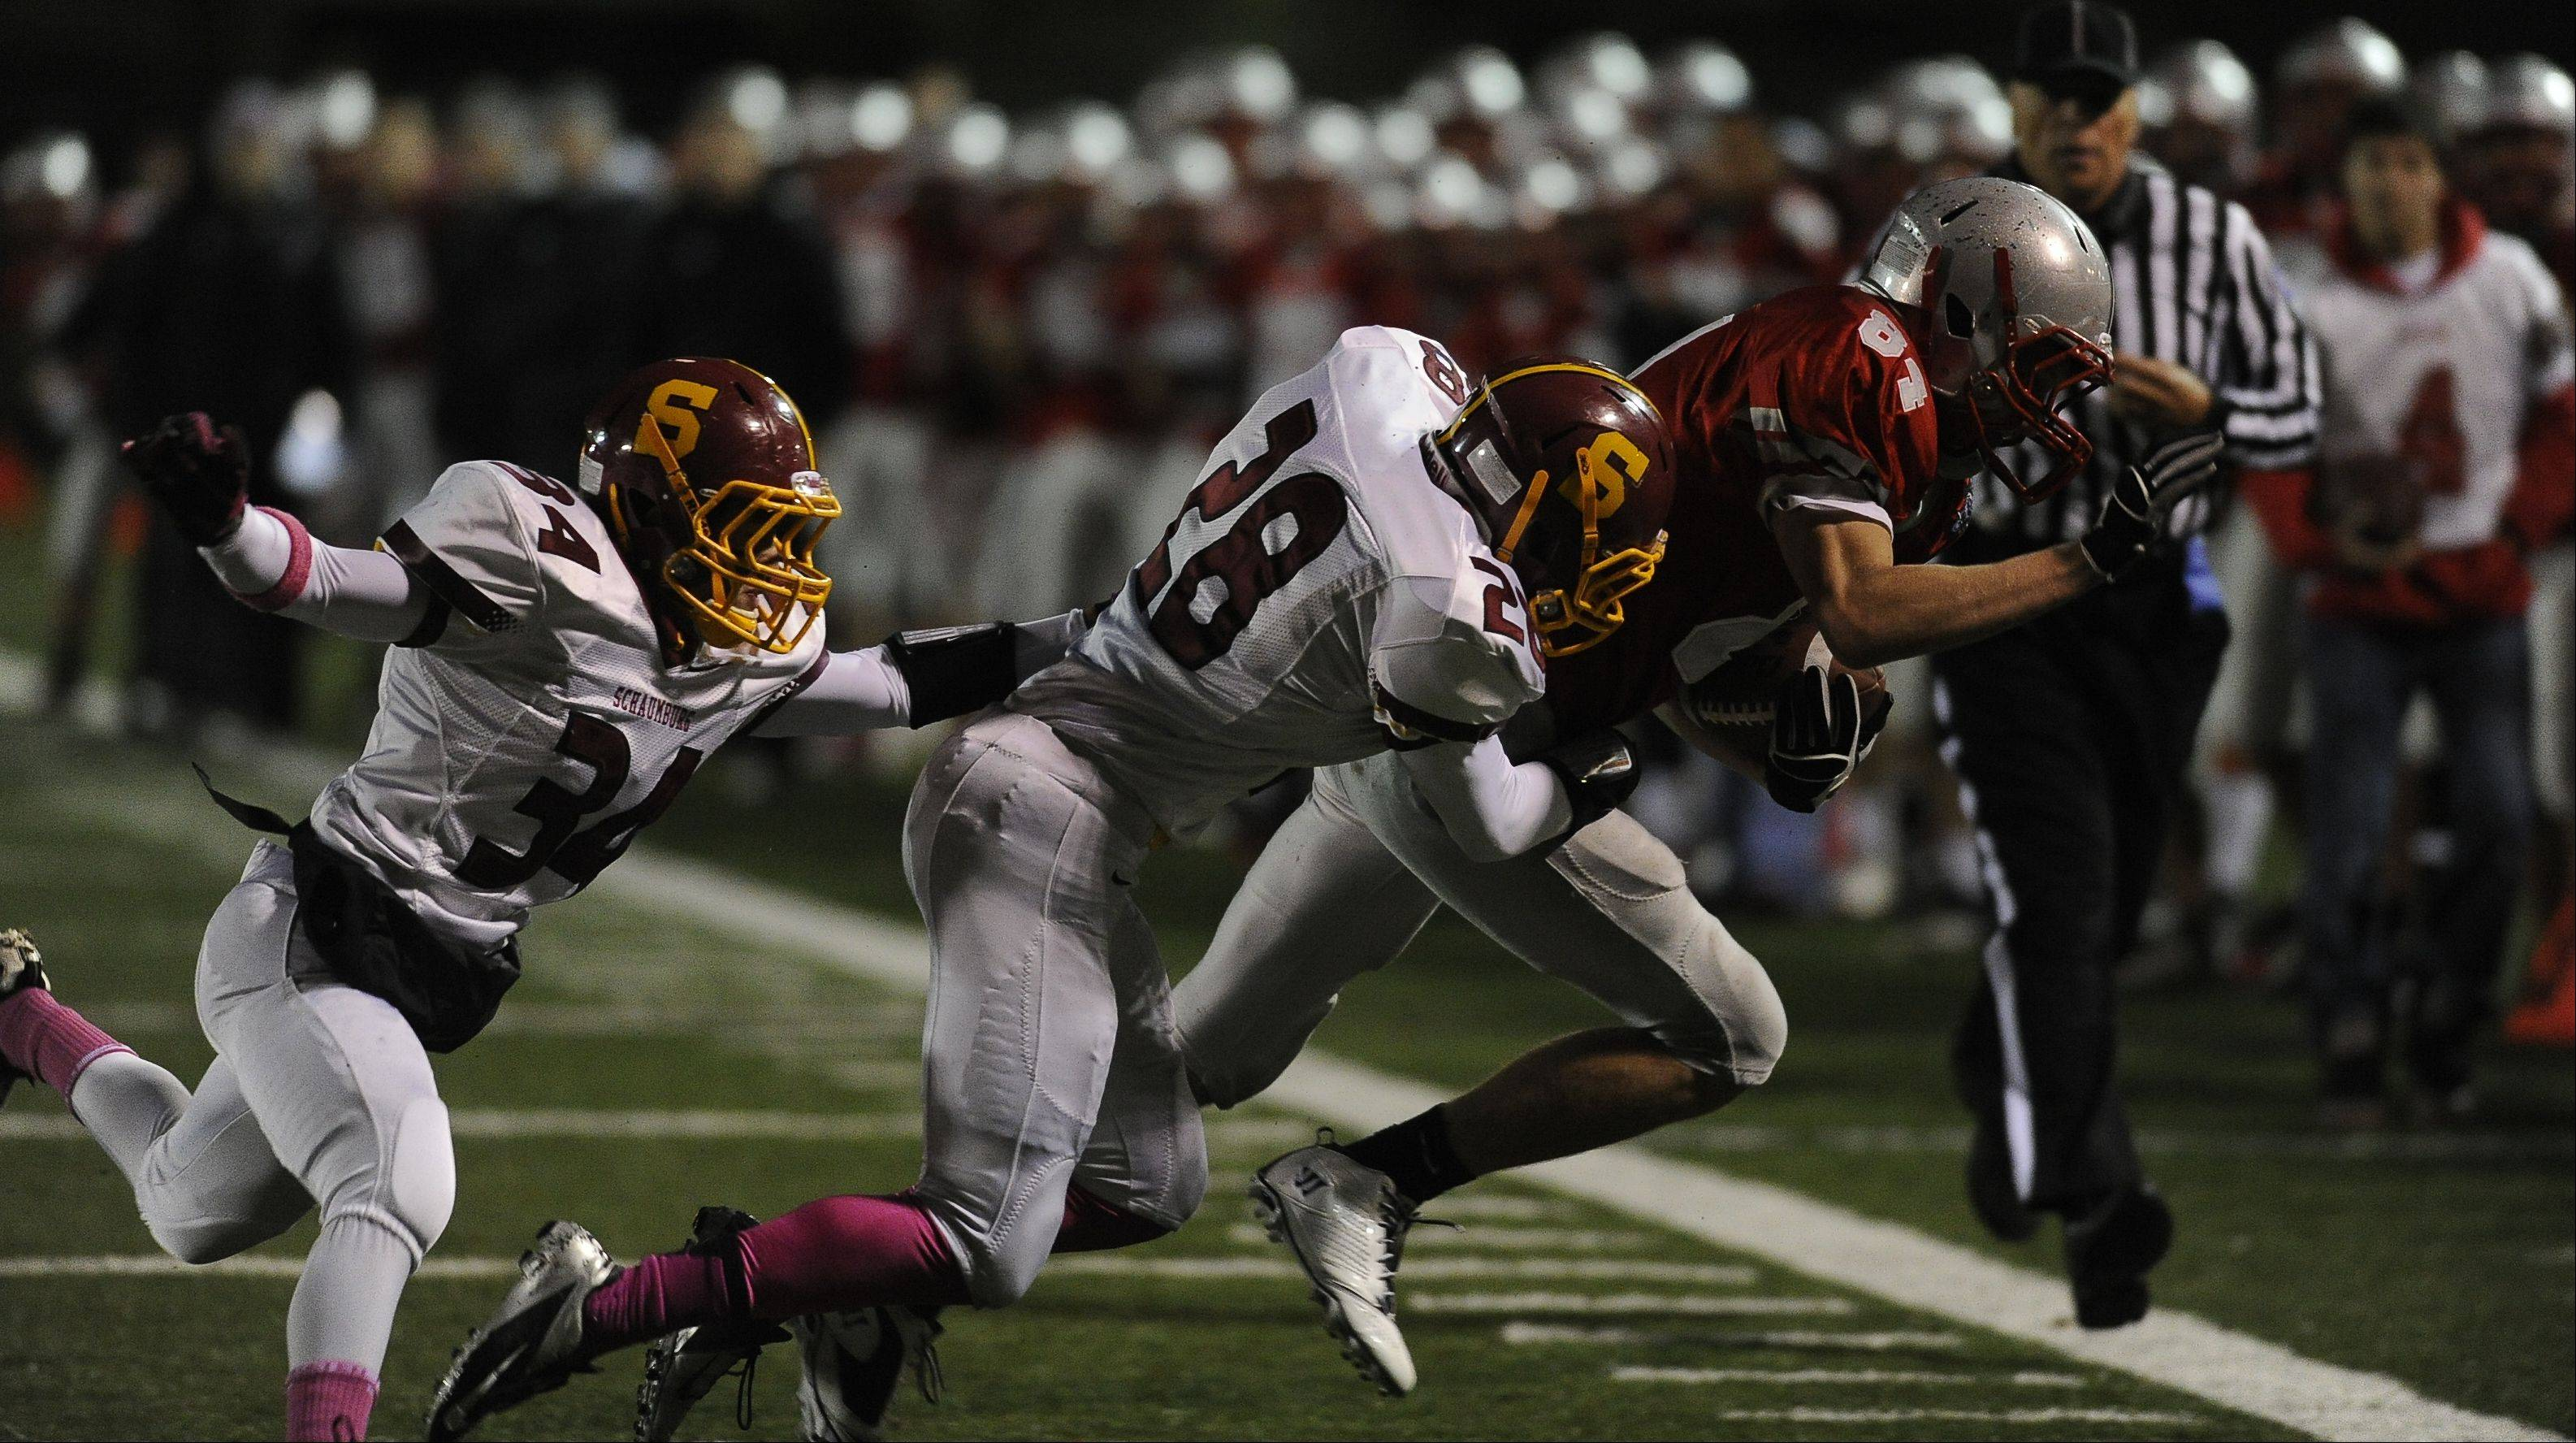 Week -9- Photos from the Schaumburg vs. Palatine football game on Friday, October 19th, at Palatine High School